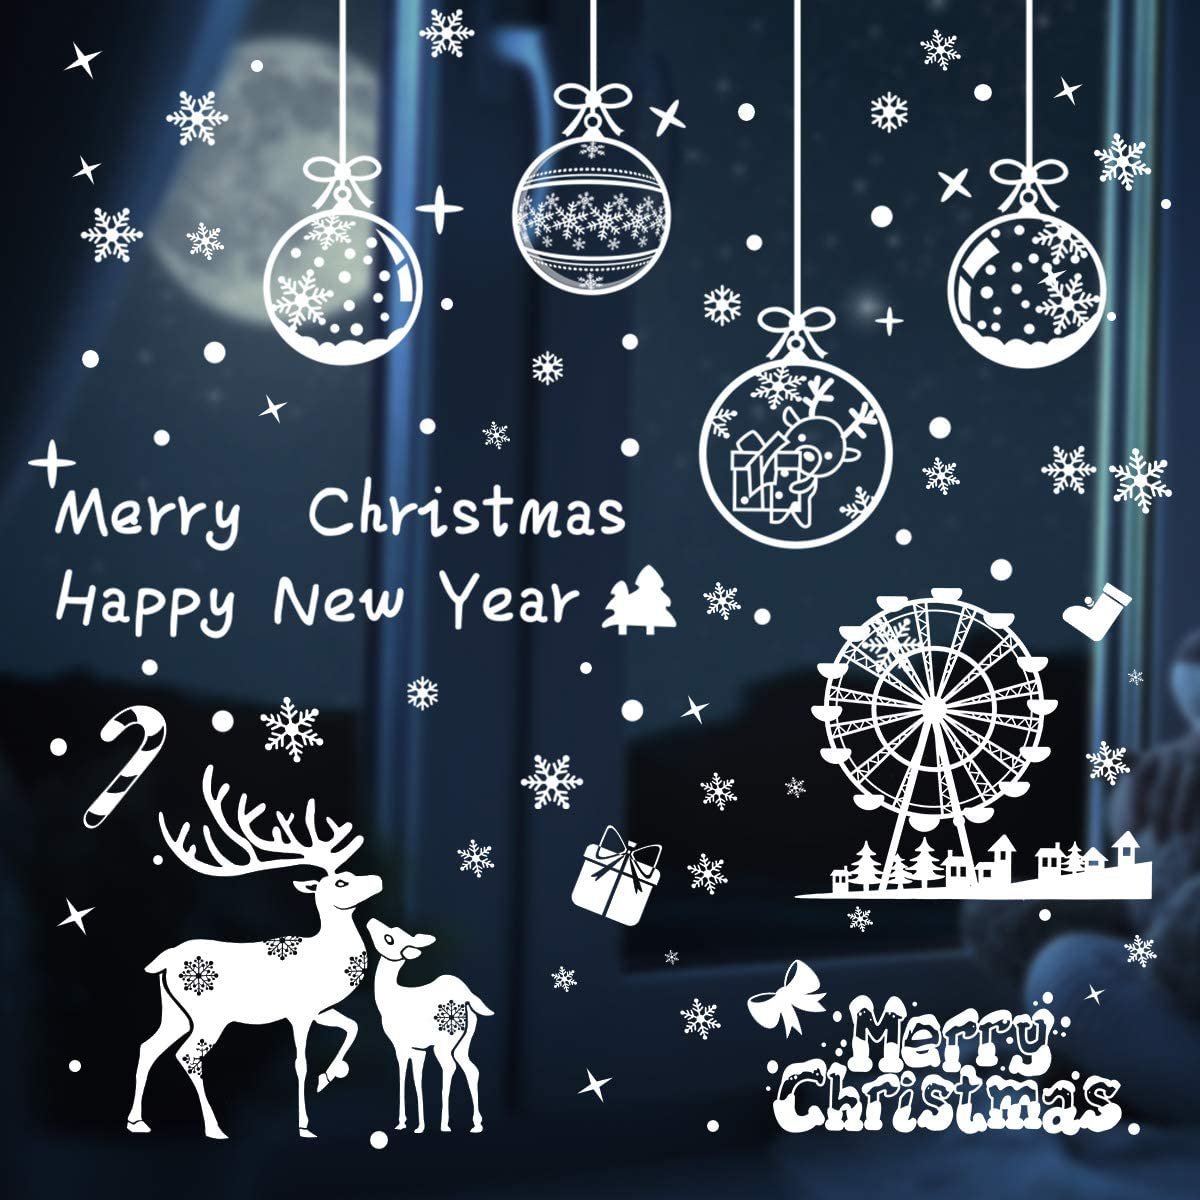 Christmas Window Clings Decorations White Snowflake Decals Window Stickers Reusable Xmas Holiday Merry Christmas Decor 210PCS